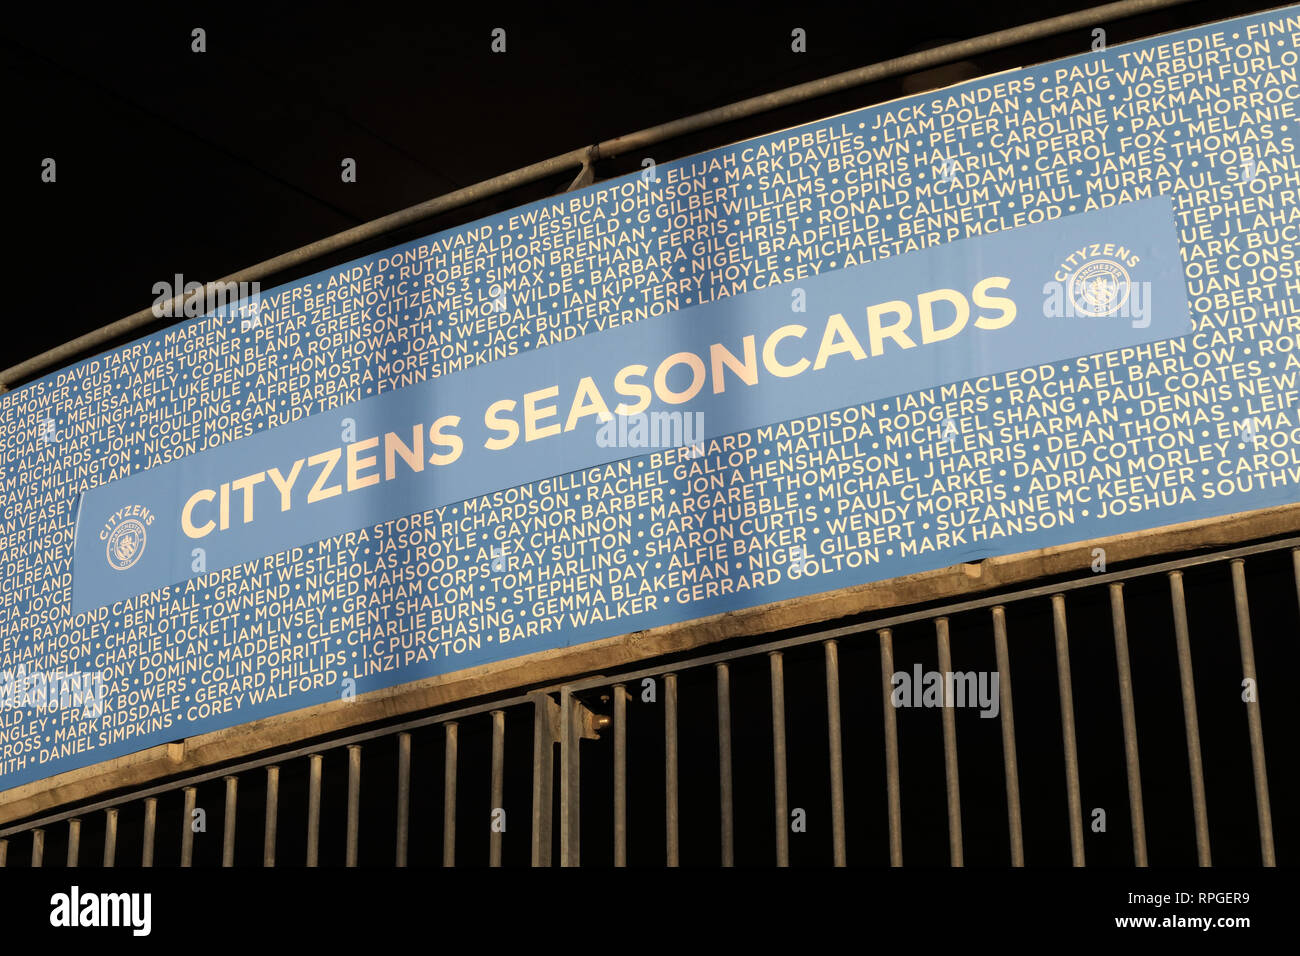 MCFC Manchester City, Etihad Stadium, Cityzens, Seasoncards, Season Ticket Cards, Football Club Stock Photo